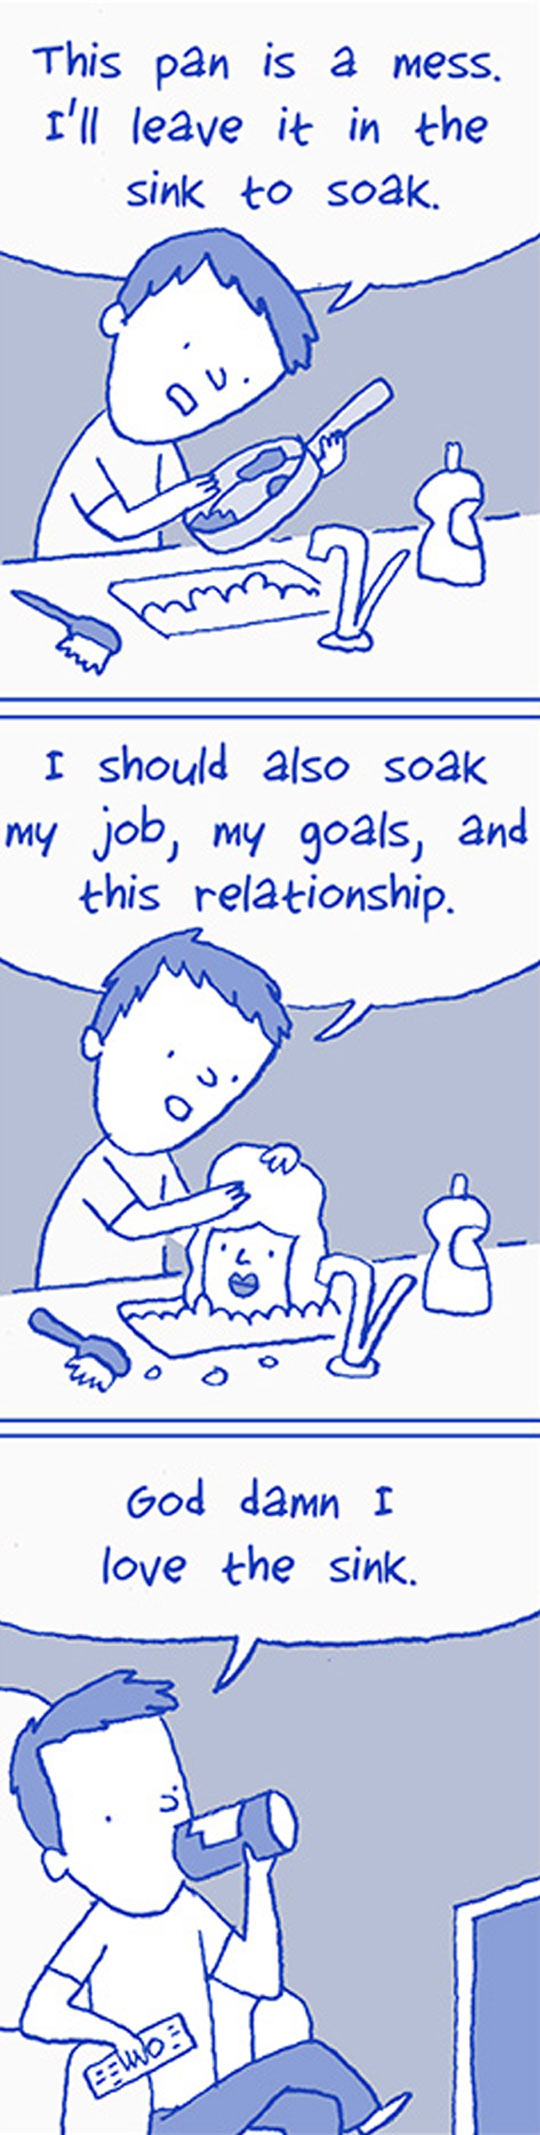 funny-picture-webcomic-pan-messy-relationship